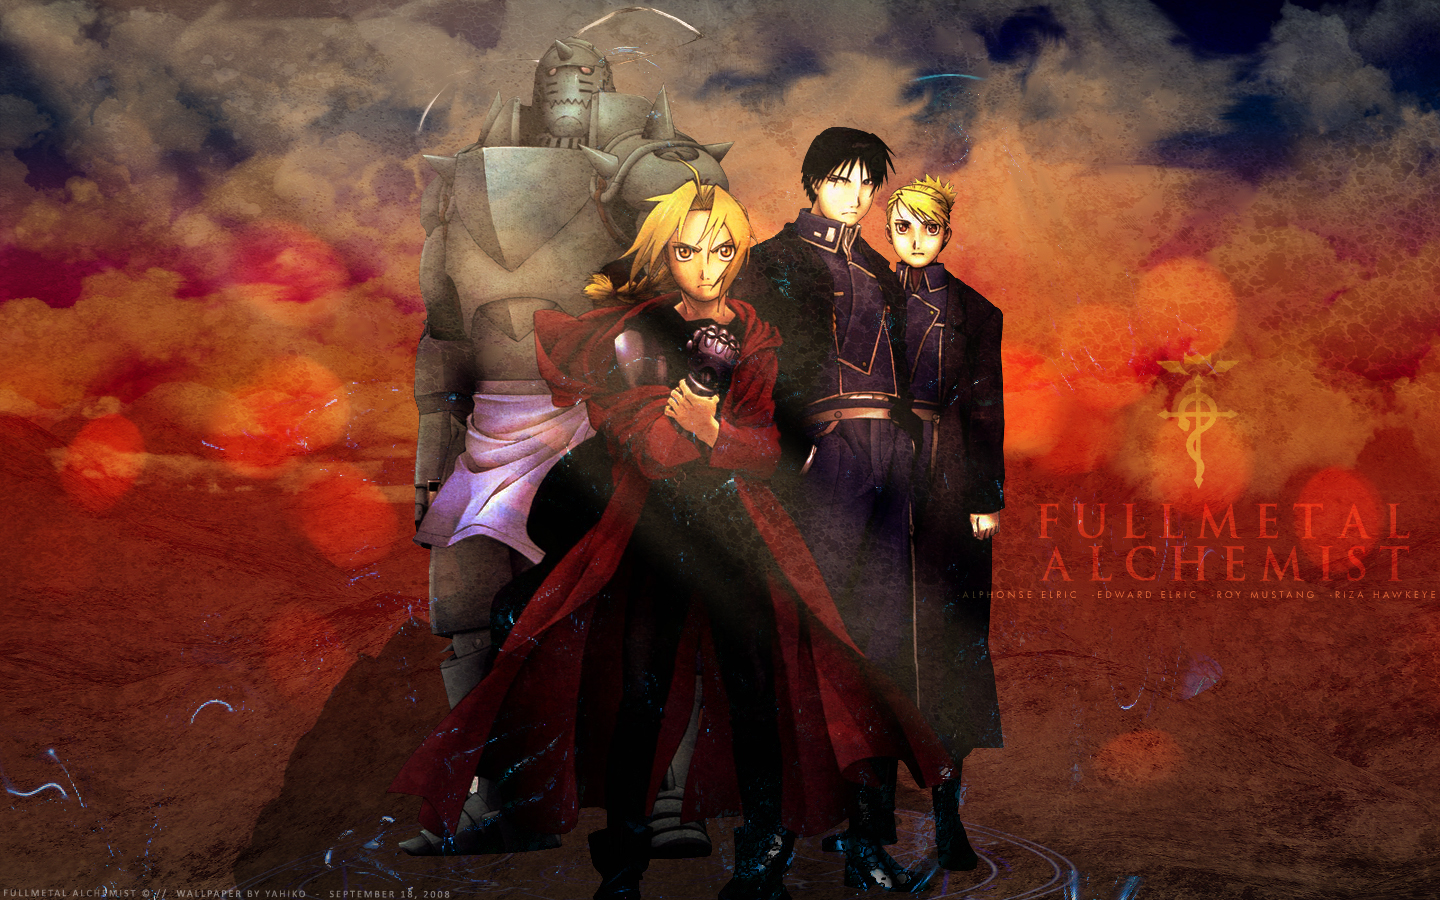 Manga And Anime Wallpapers Fullmetal Alchemist HD Wallpaper 1440x900